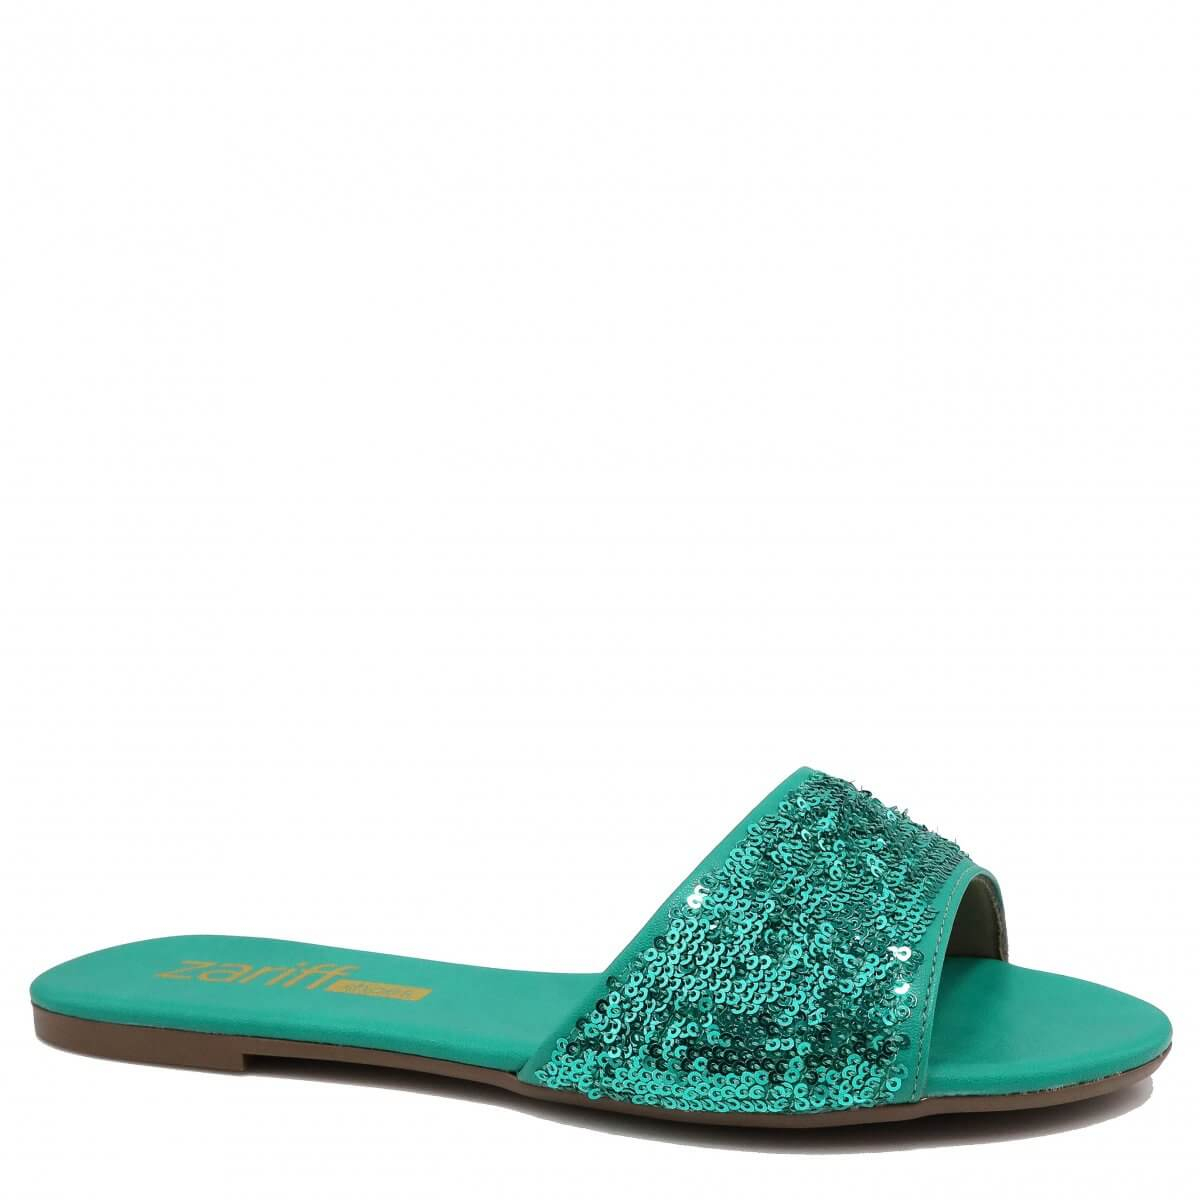 Rasteira Zariff Shoes Casual Verde